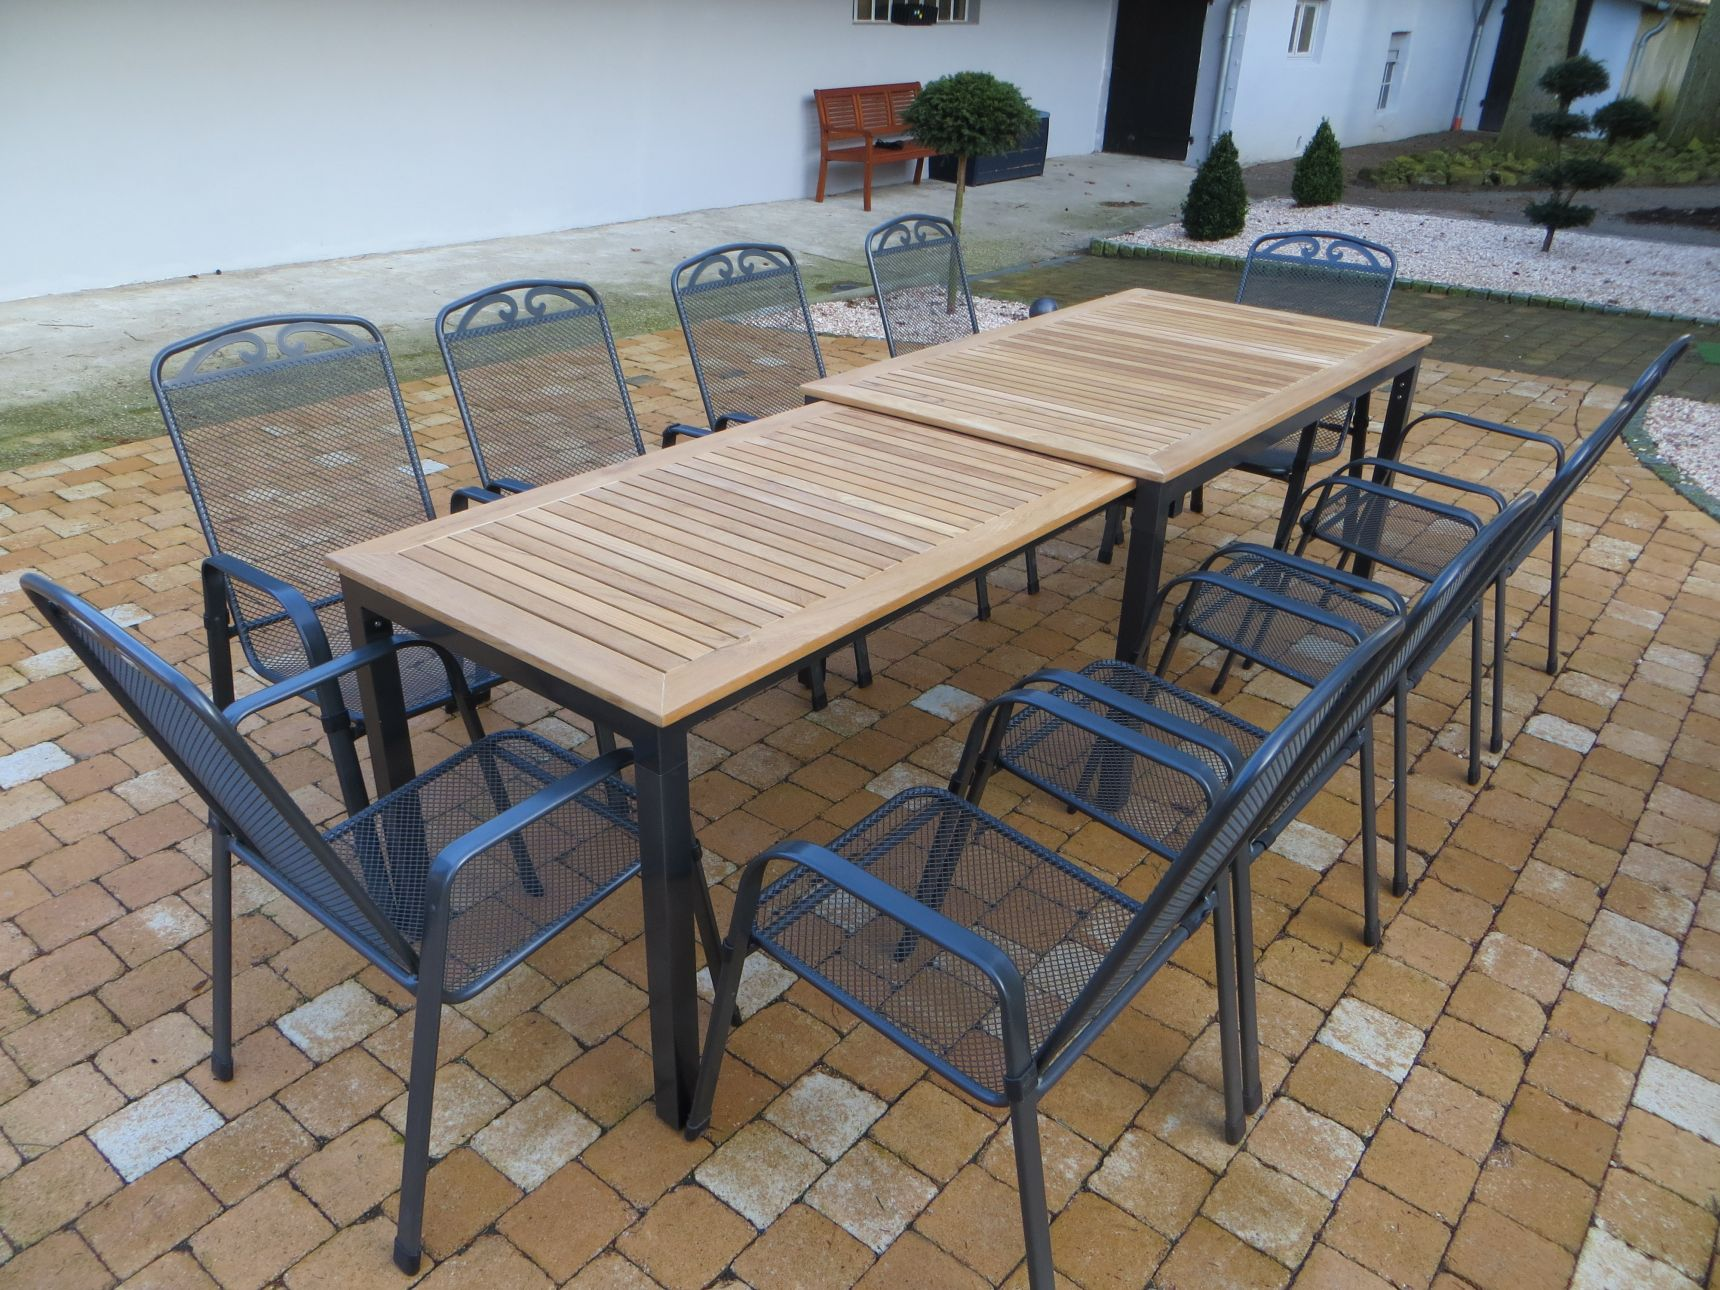 Tifosi teak gartenm bel set 11 teilig grau anthrazit for Gartenmobel teak set